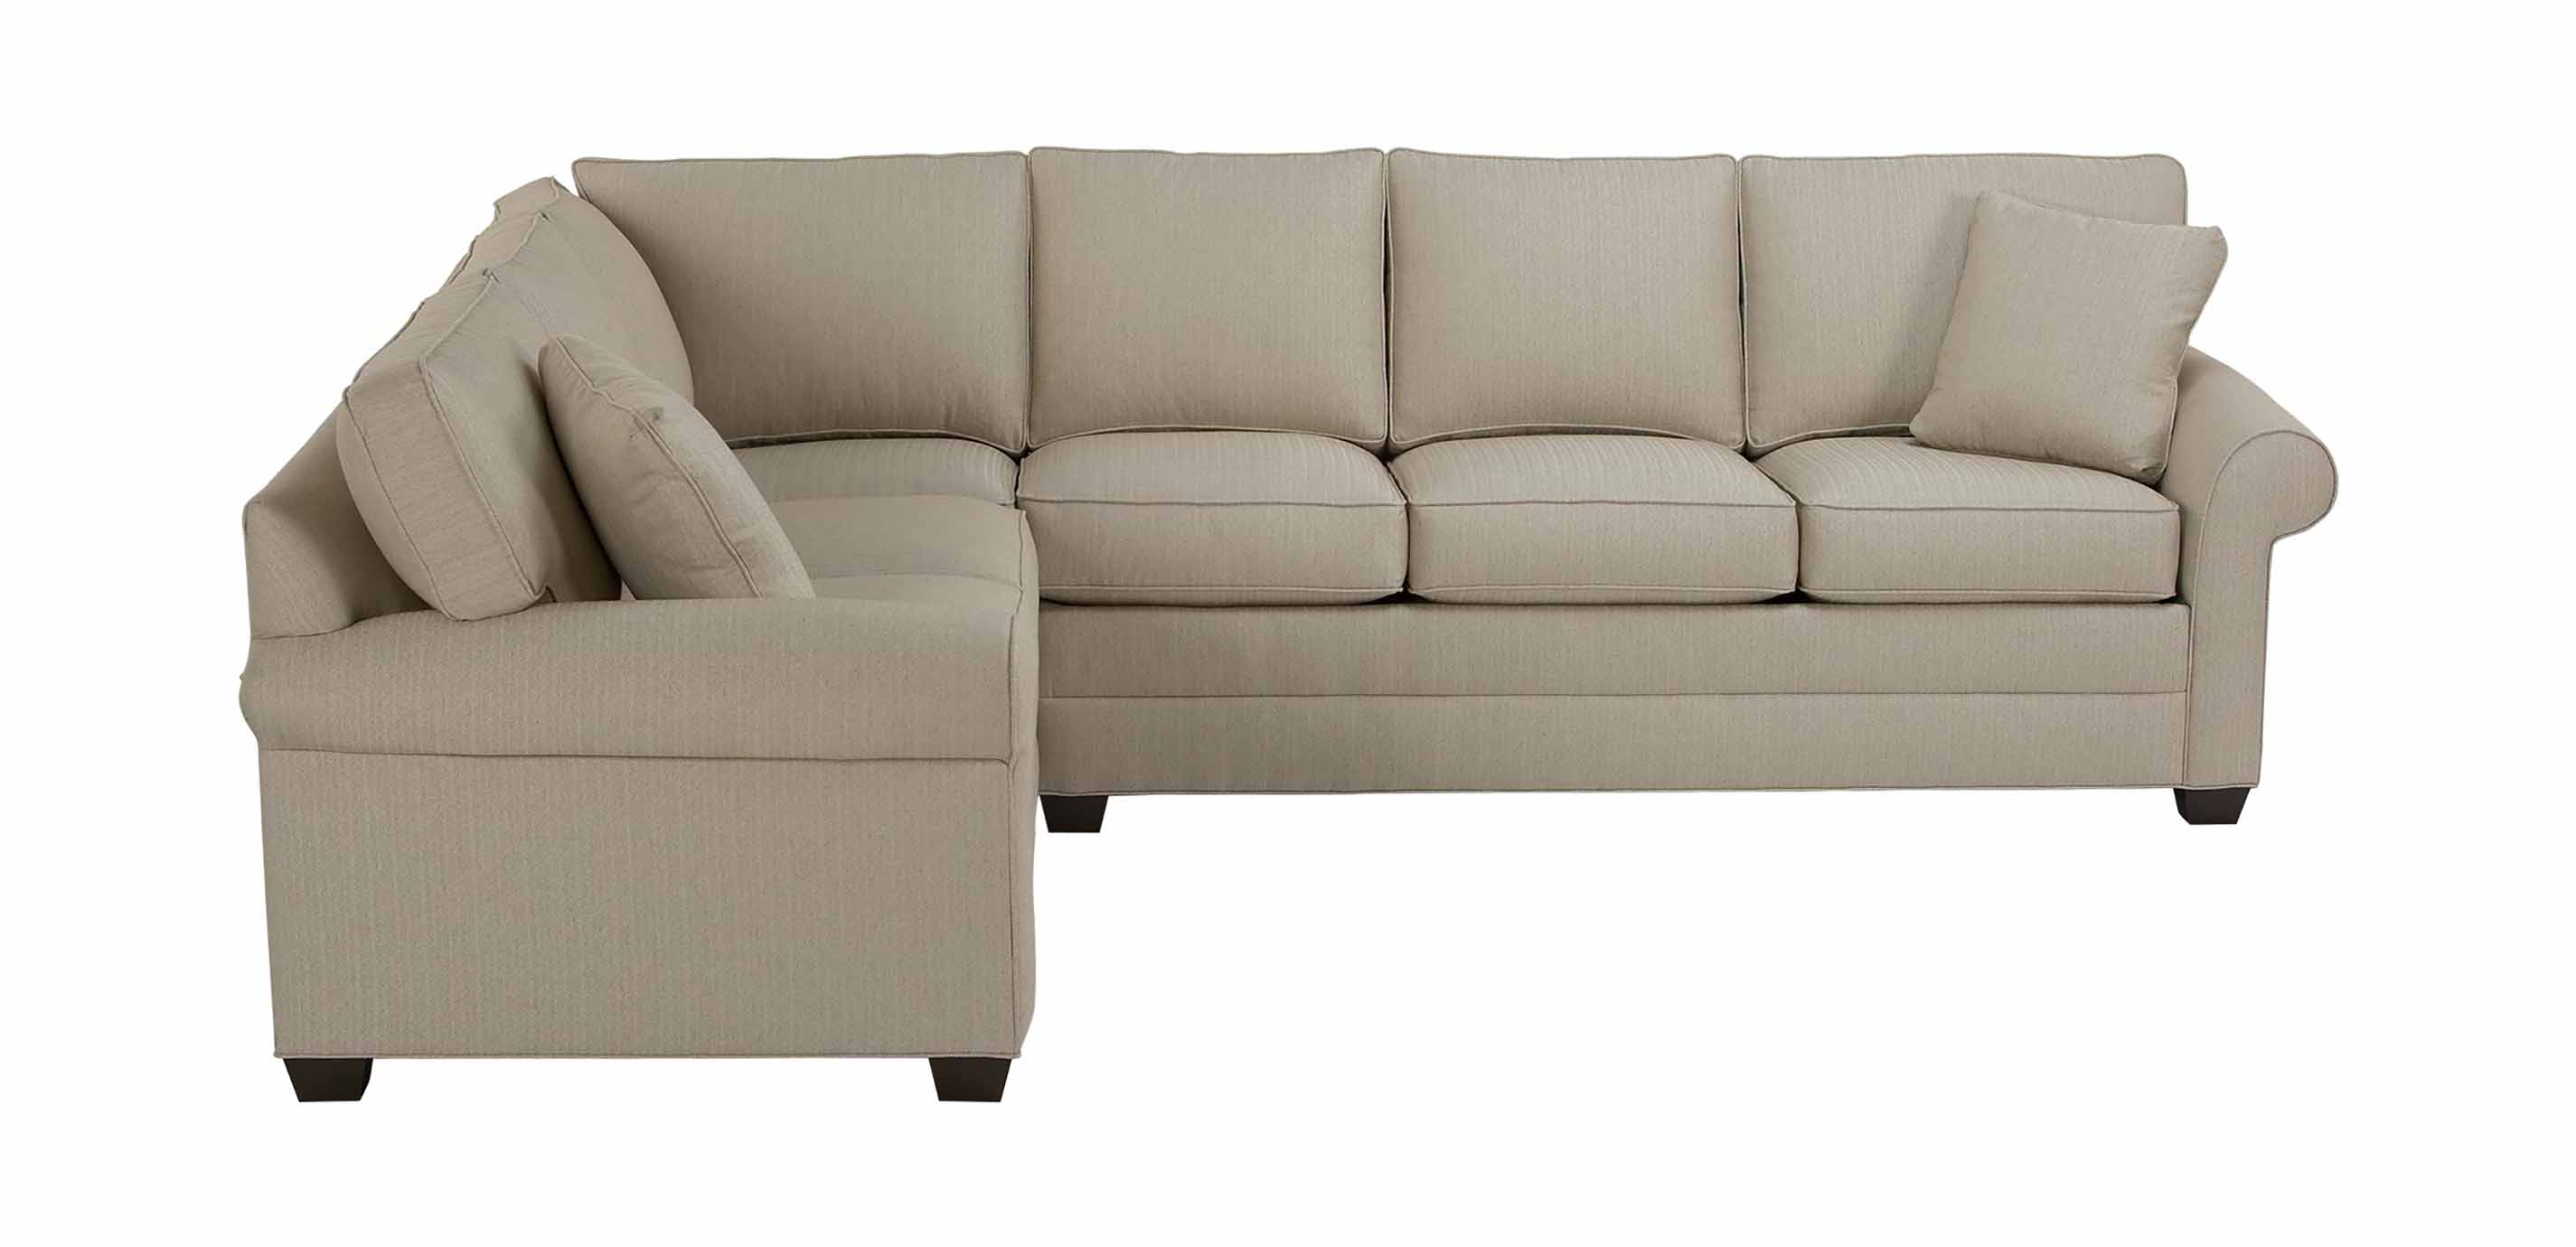 roll arm chair slipcovers phil and teds high bennett sectional sectionals ethan allen